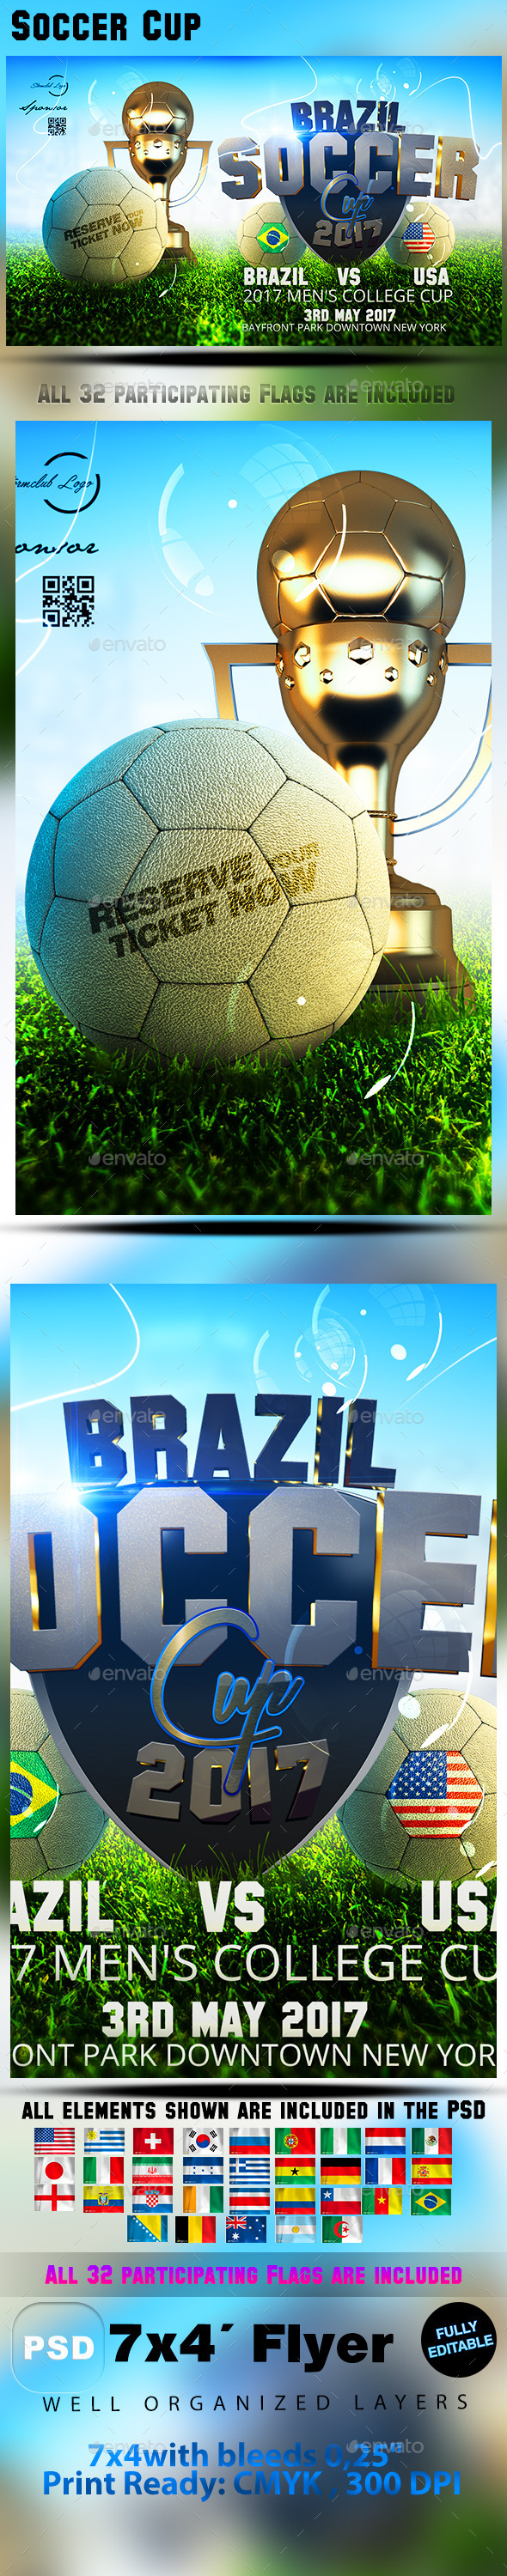 GraphicRiver Soccer Cup 10327637